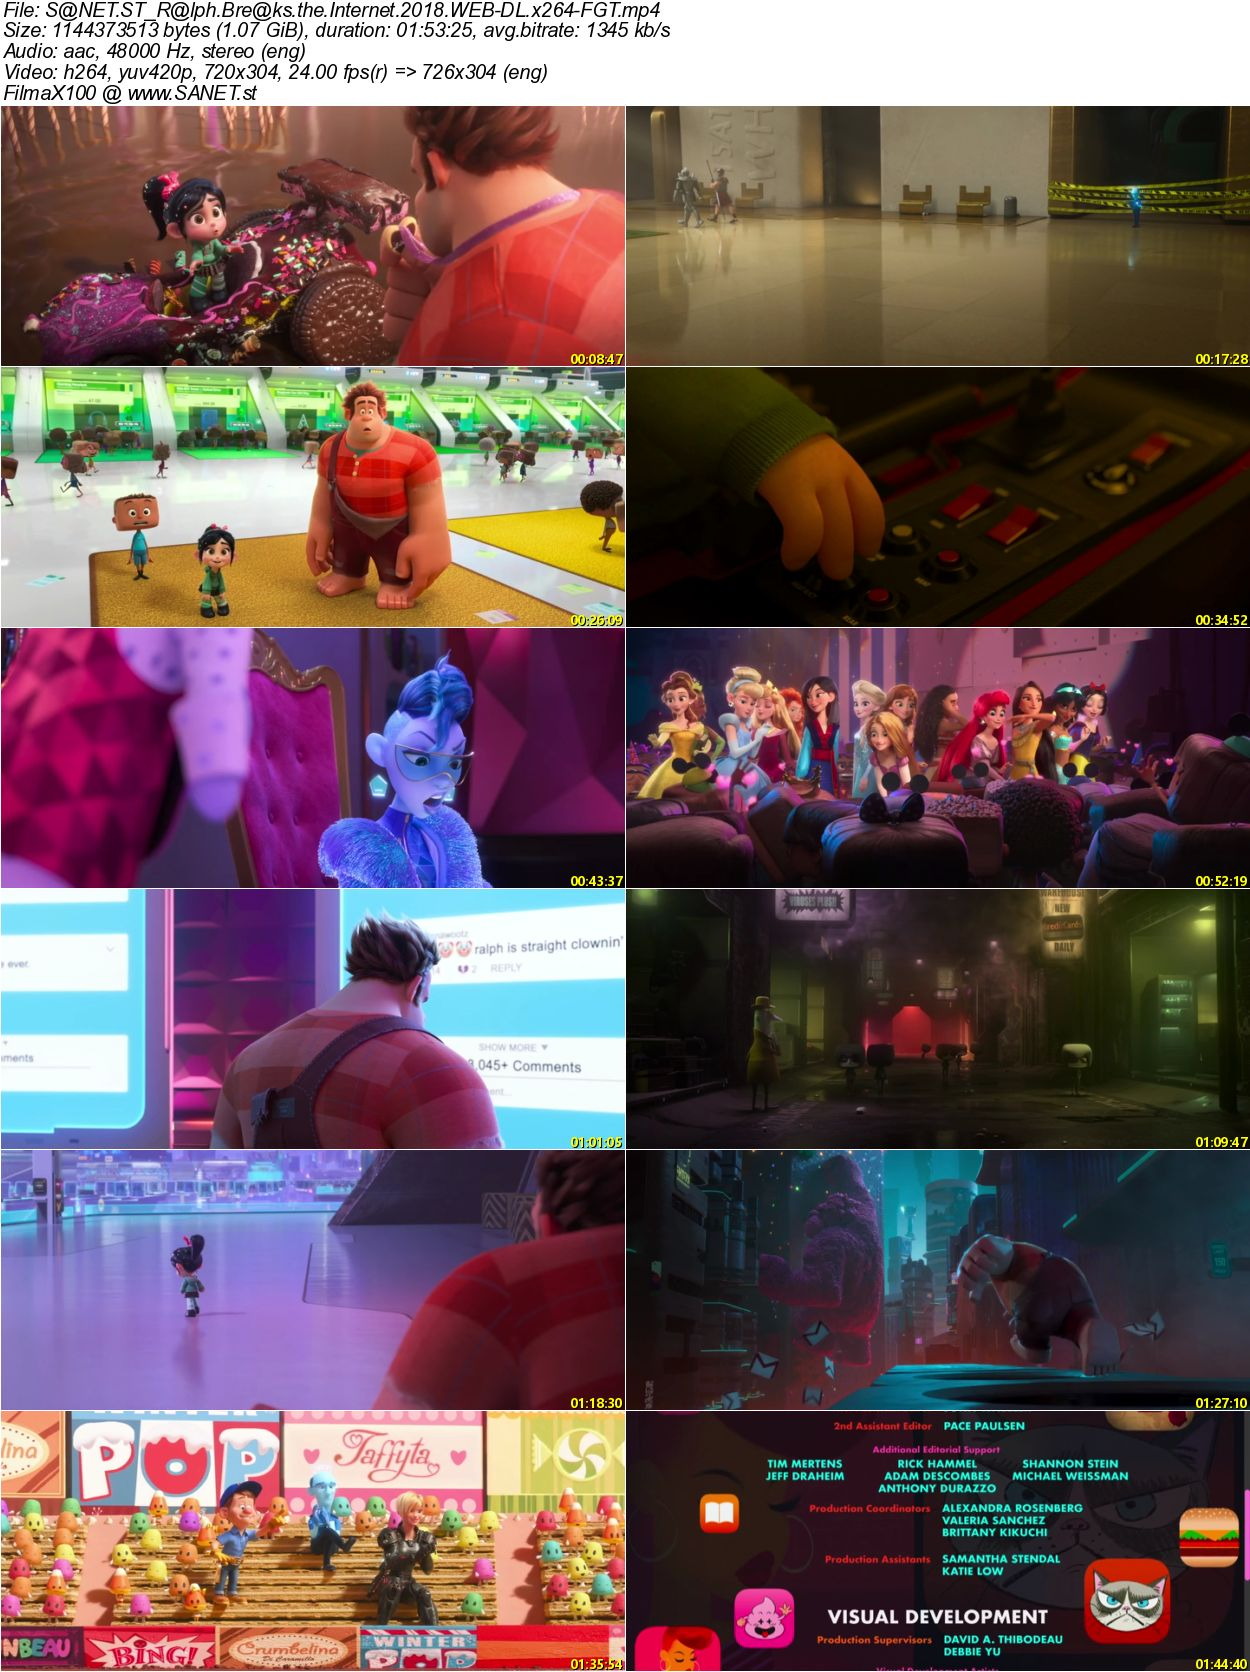 Download Ralph Breaks The Internet 2018 Web Dl X264 Fgt Softarchive